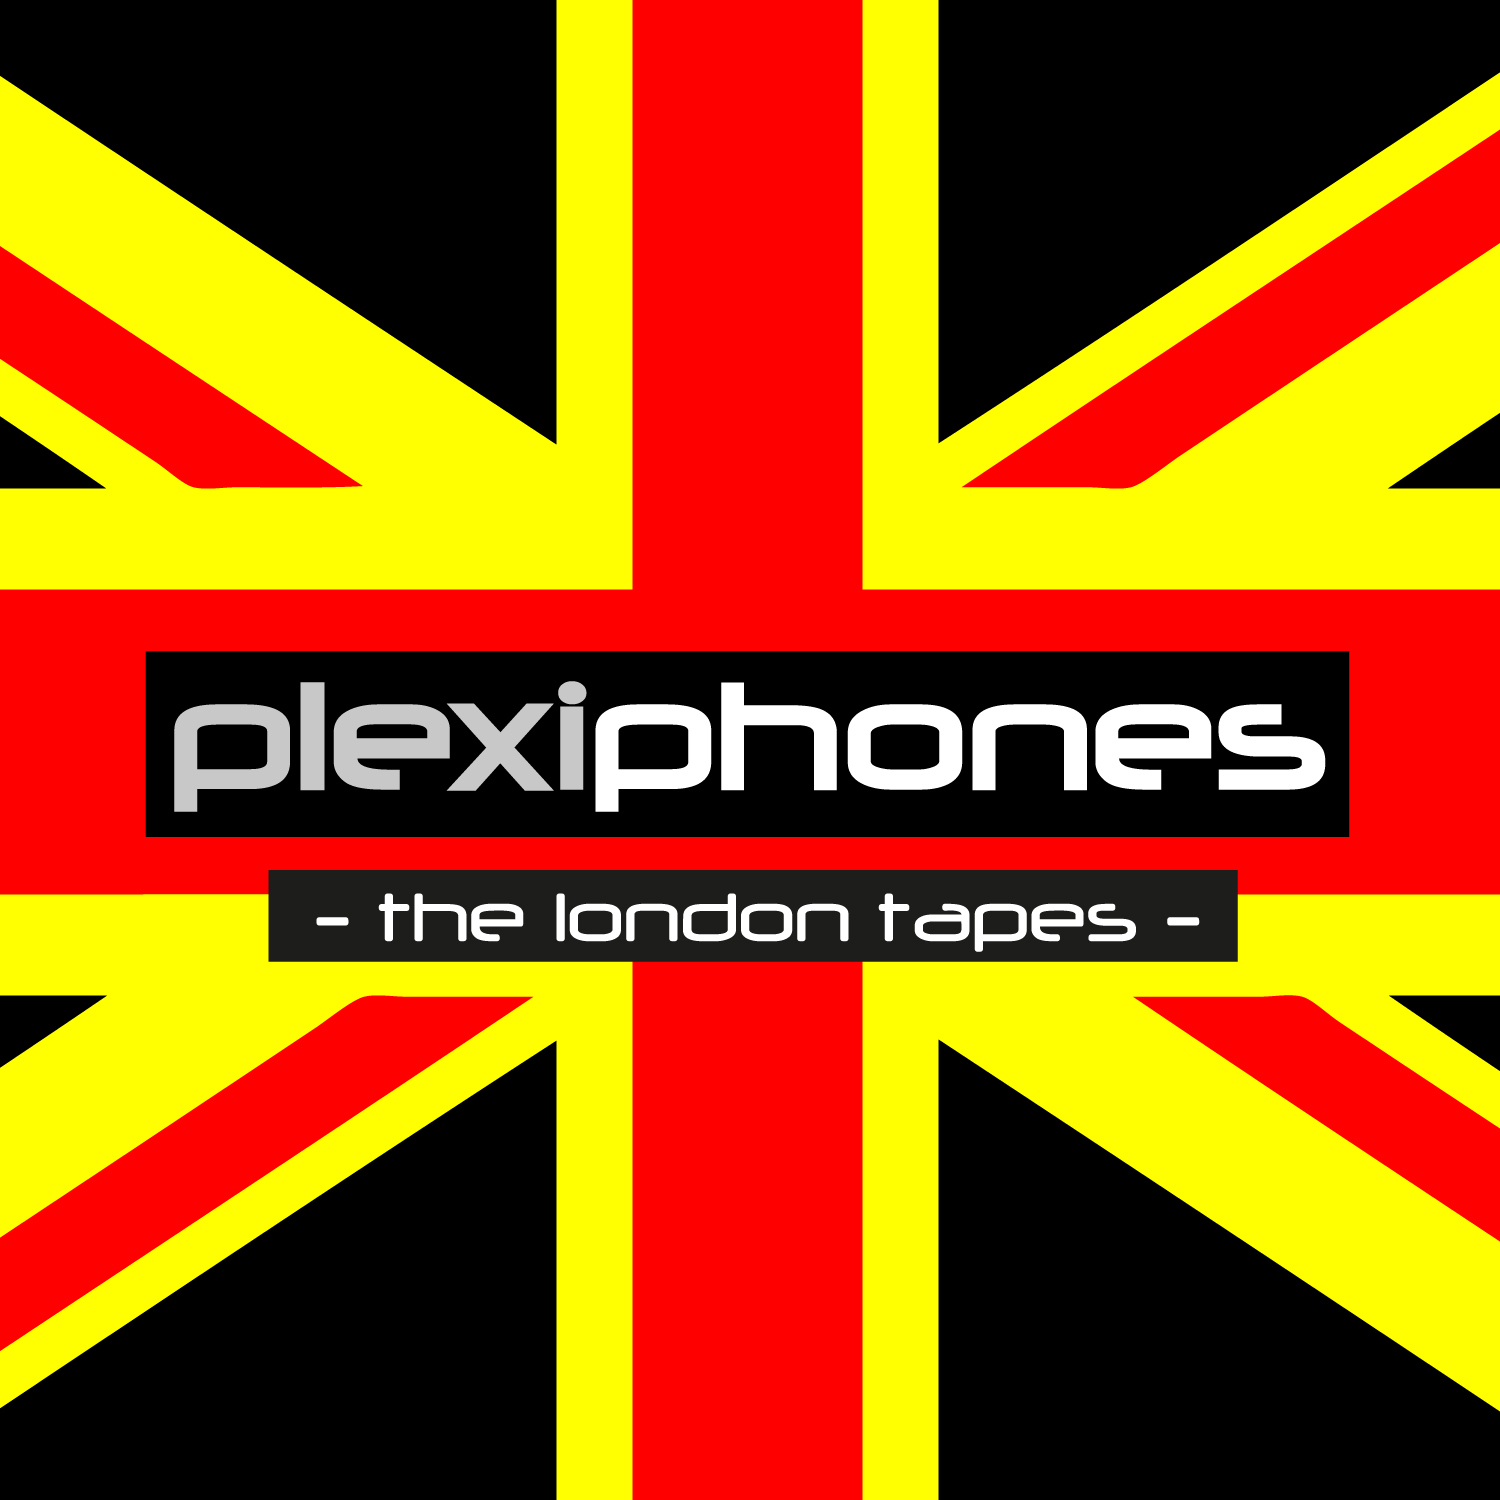 Plexiphones, The London Tapes